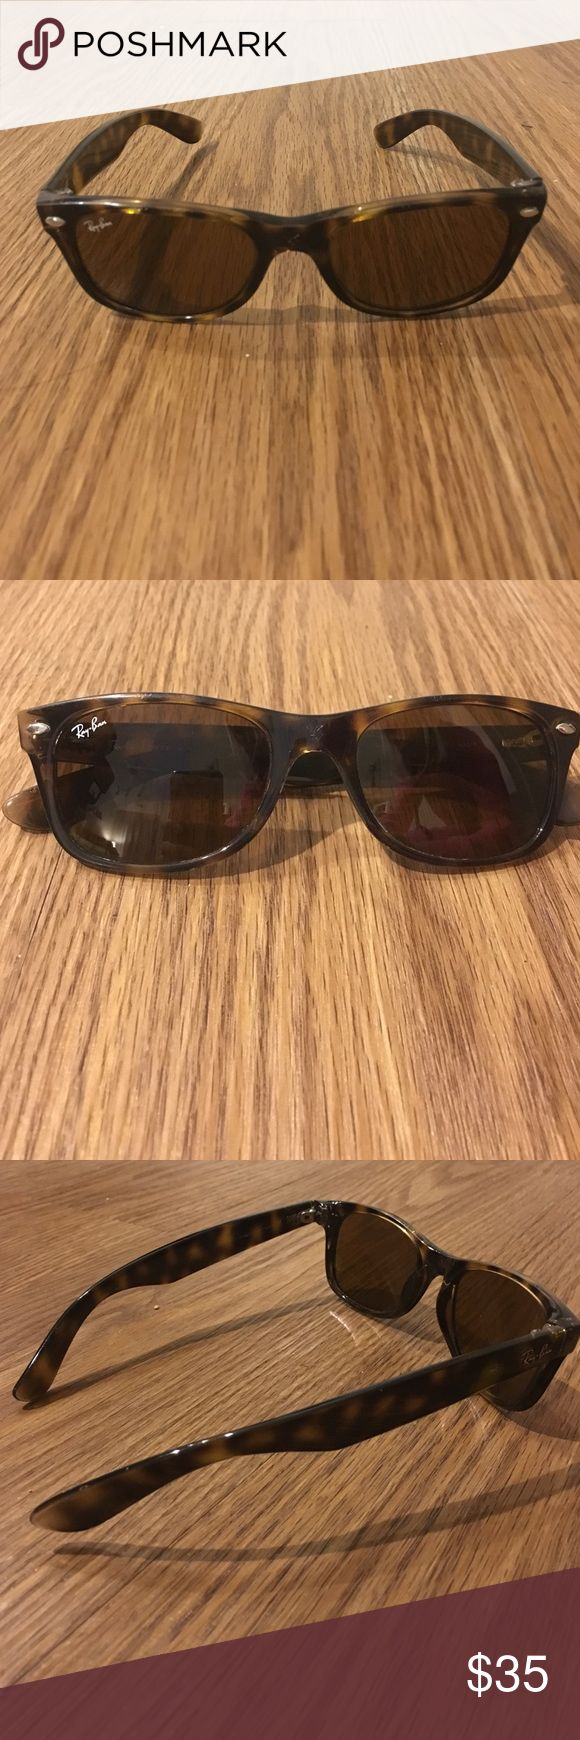 Ray Ban Wayfarers Ray ban wayfarers. Scratched between the lenses but in pretty good condition. Have been worn a lot. Smaller size. Tortoise color. Ray-Ban Accessories Sunglasses